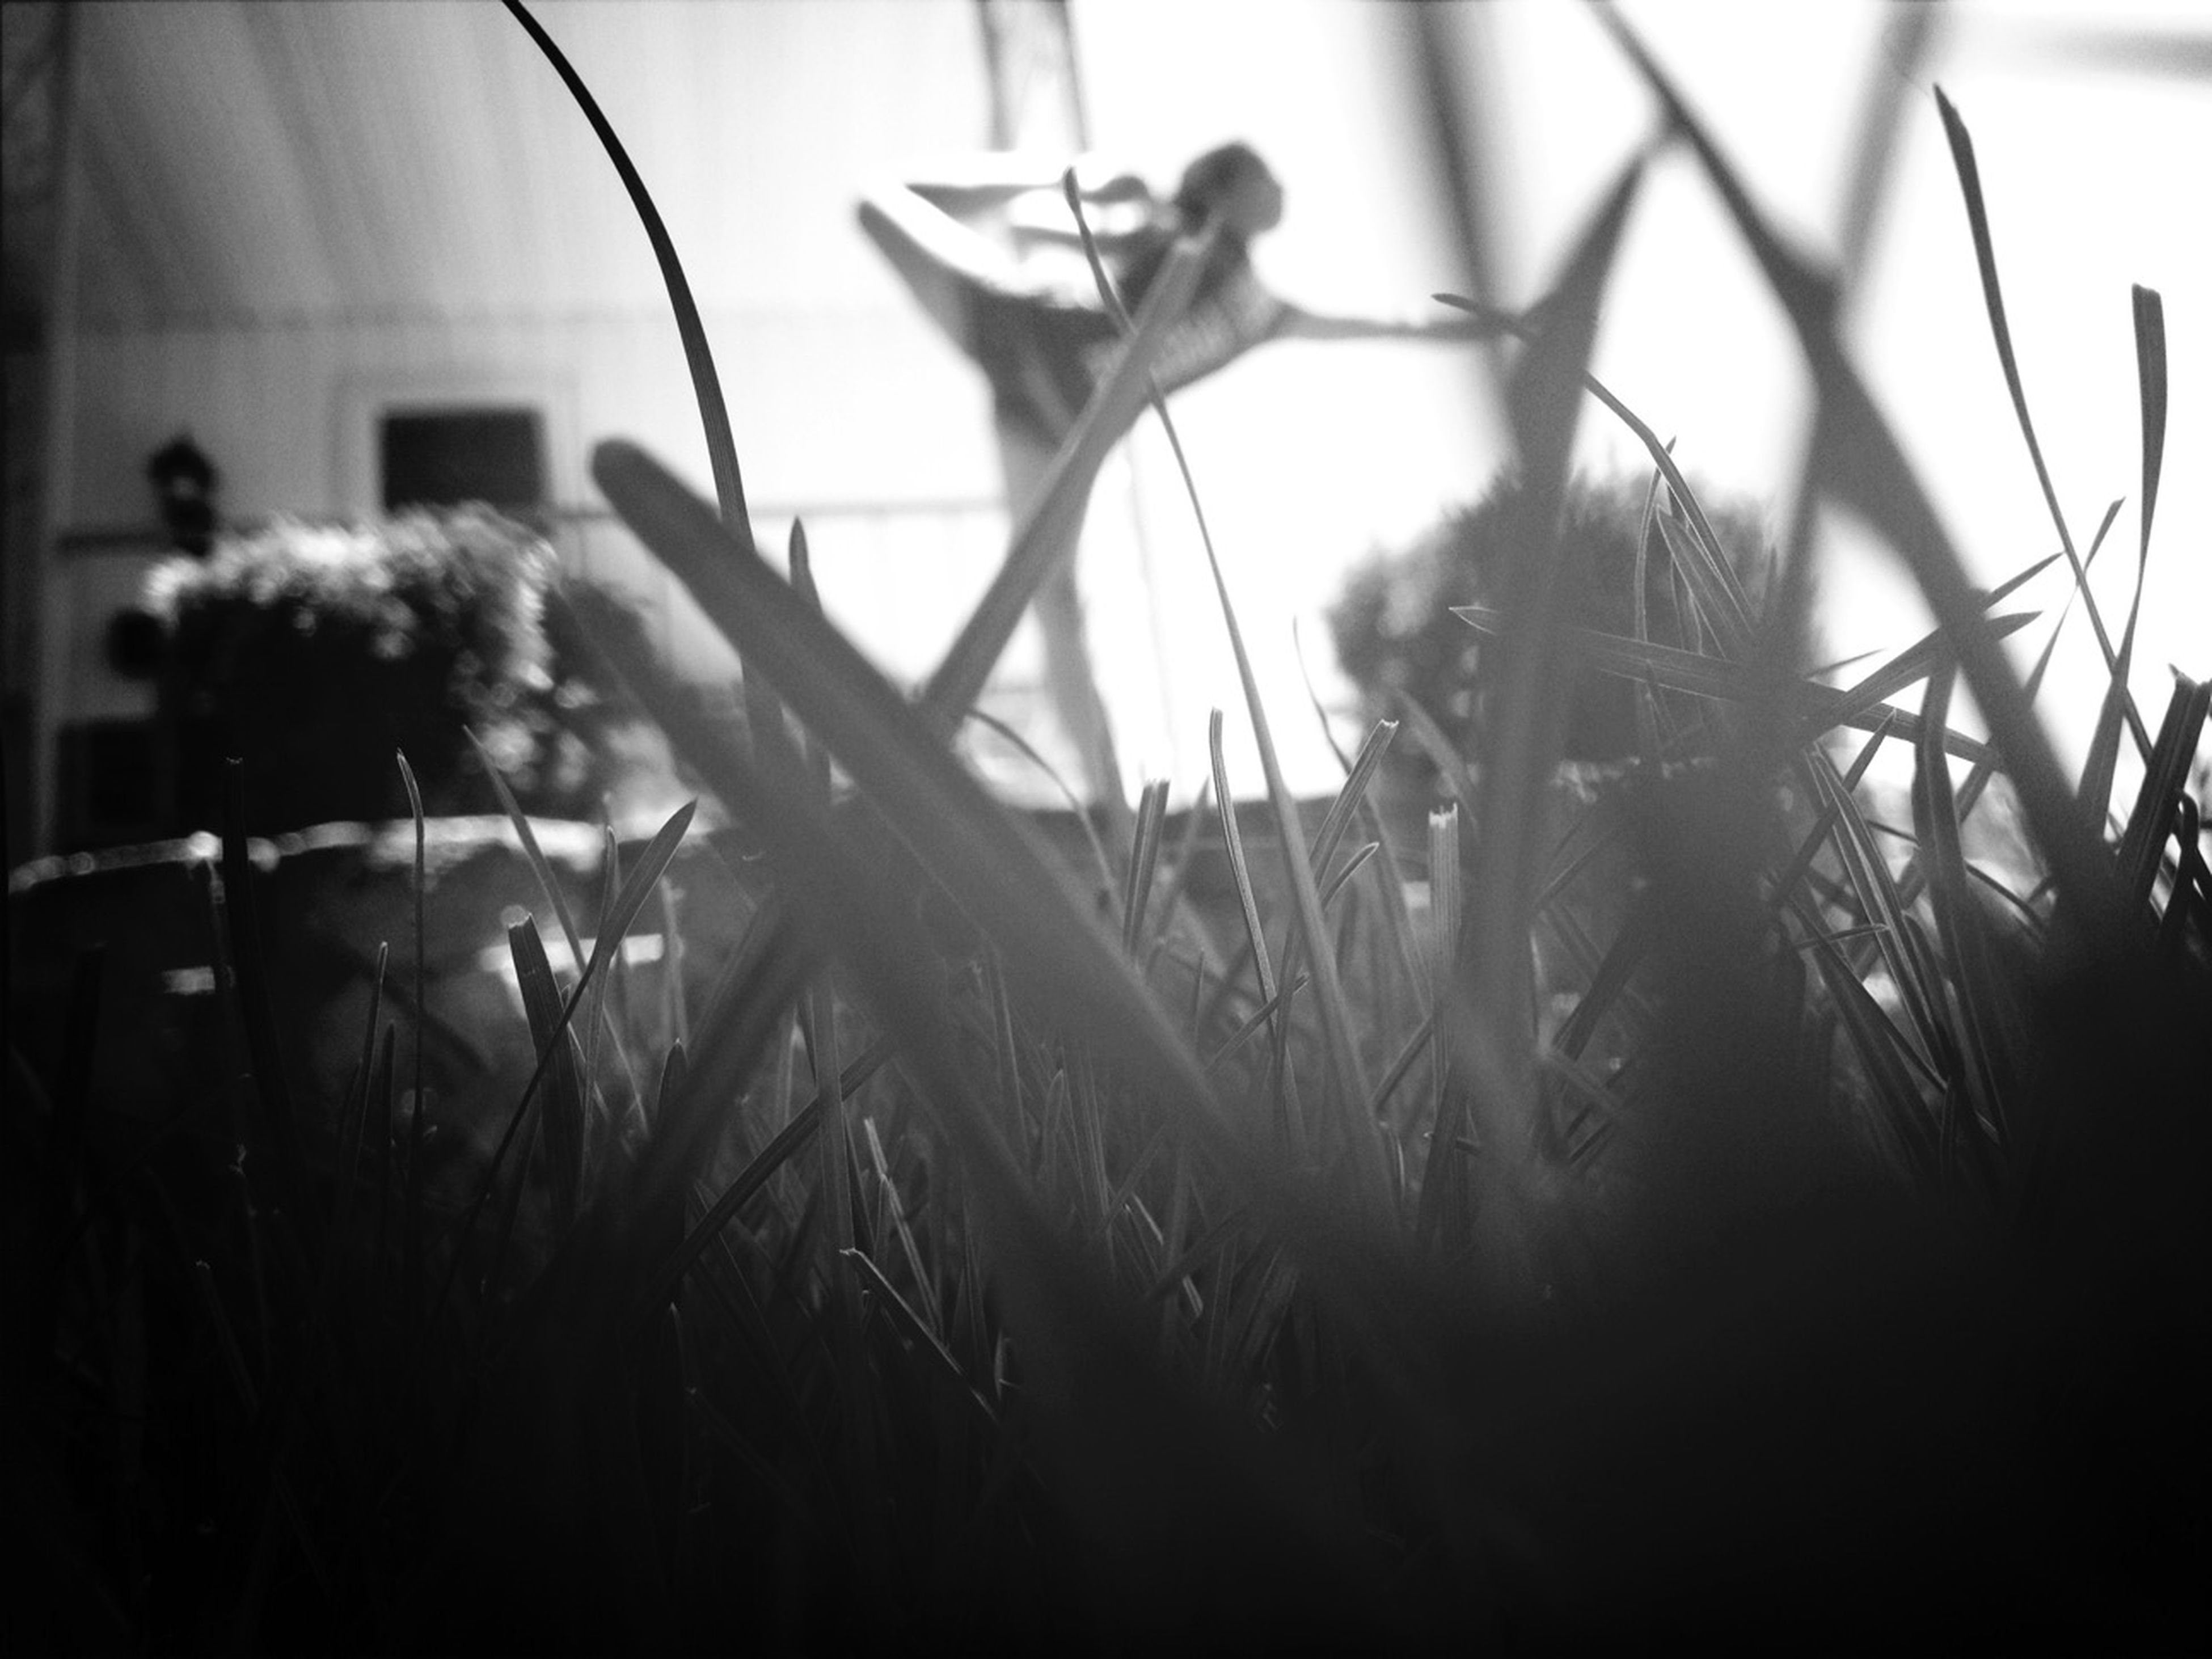 plant, grass, field, close-up, focus on foreground, growth, selective focus, day, sunlight, front or back yard, indoors, nature, no people, grassy, part of, metal, abandoned, sky